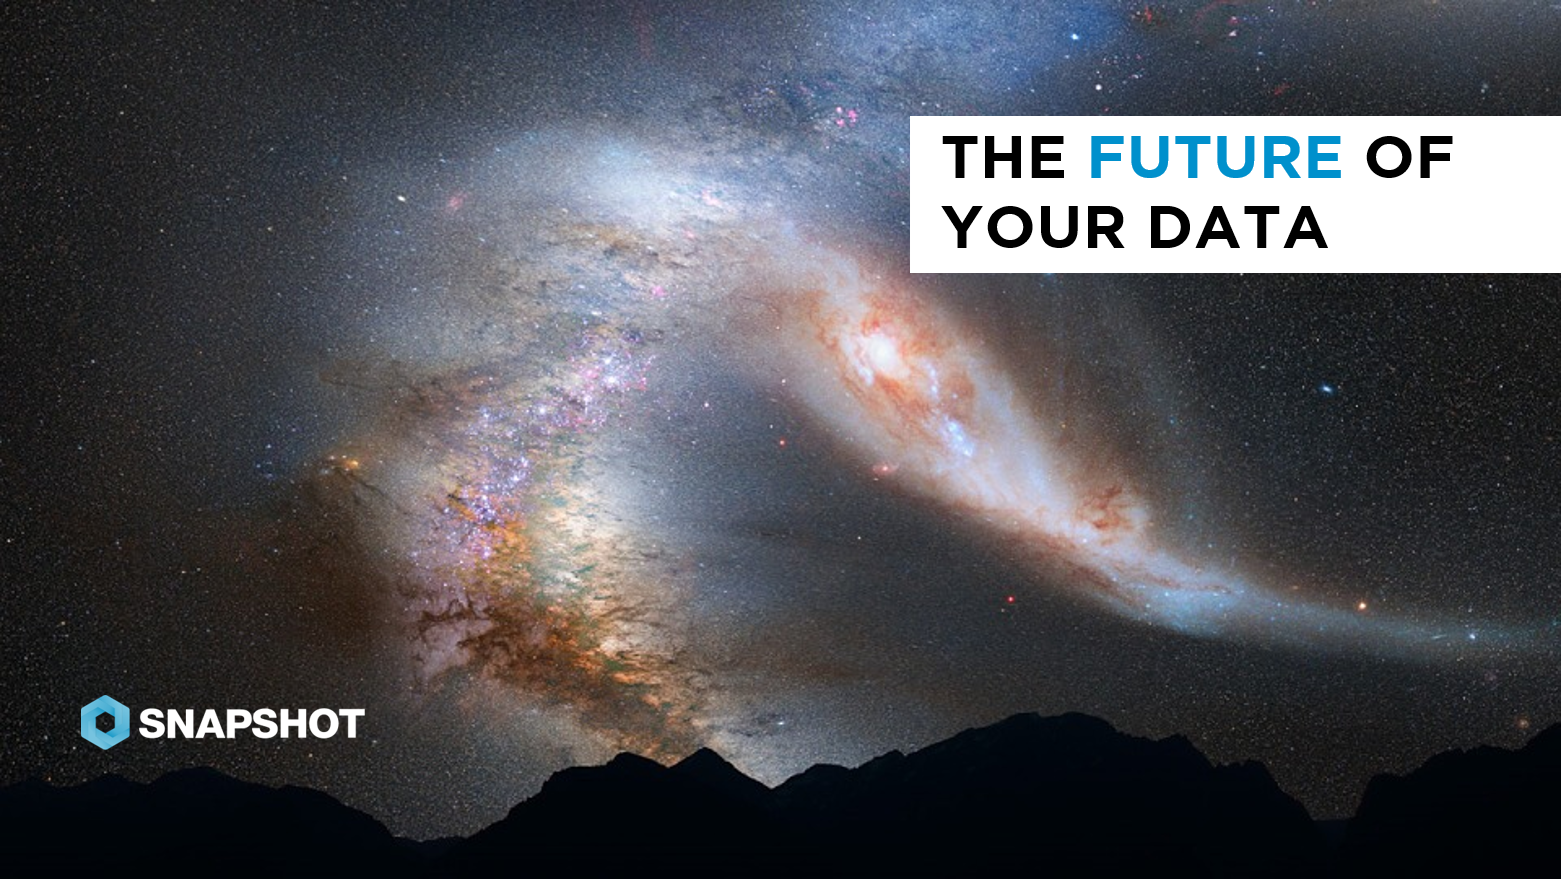 09.27.2019 The future of your data